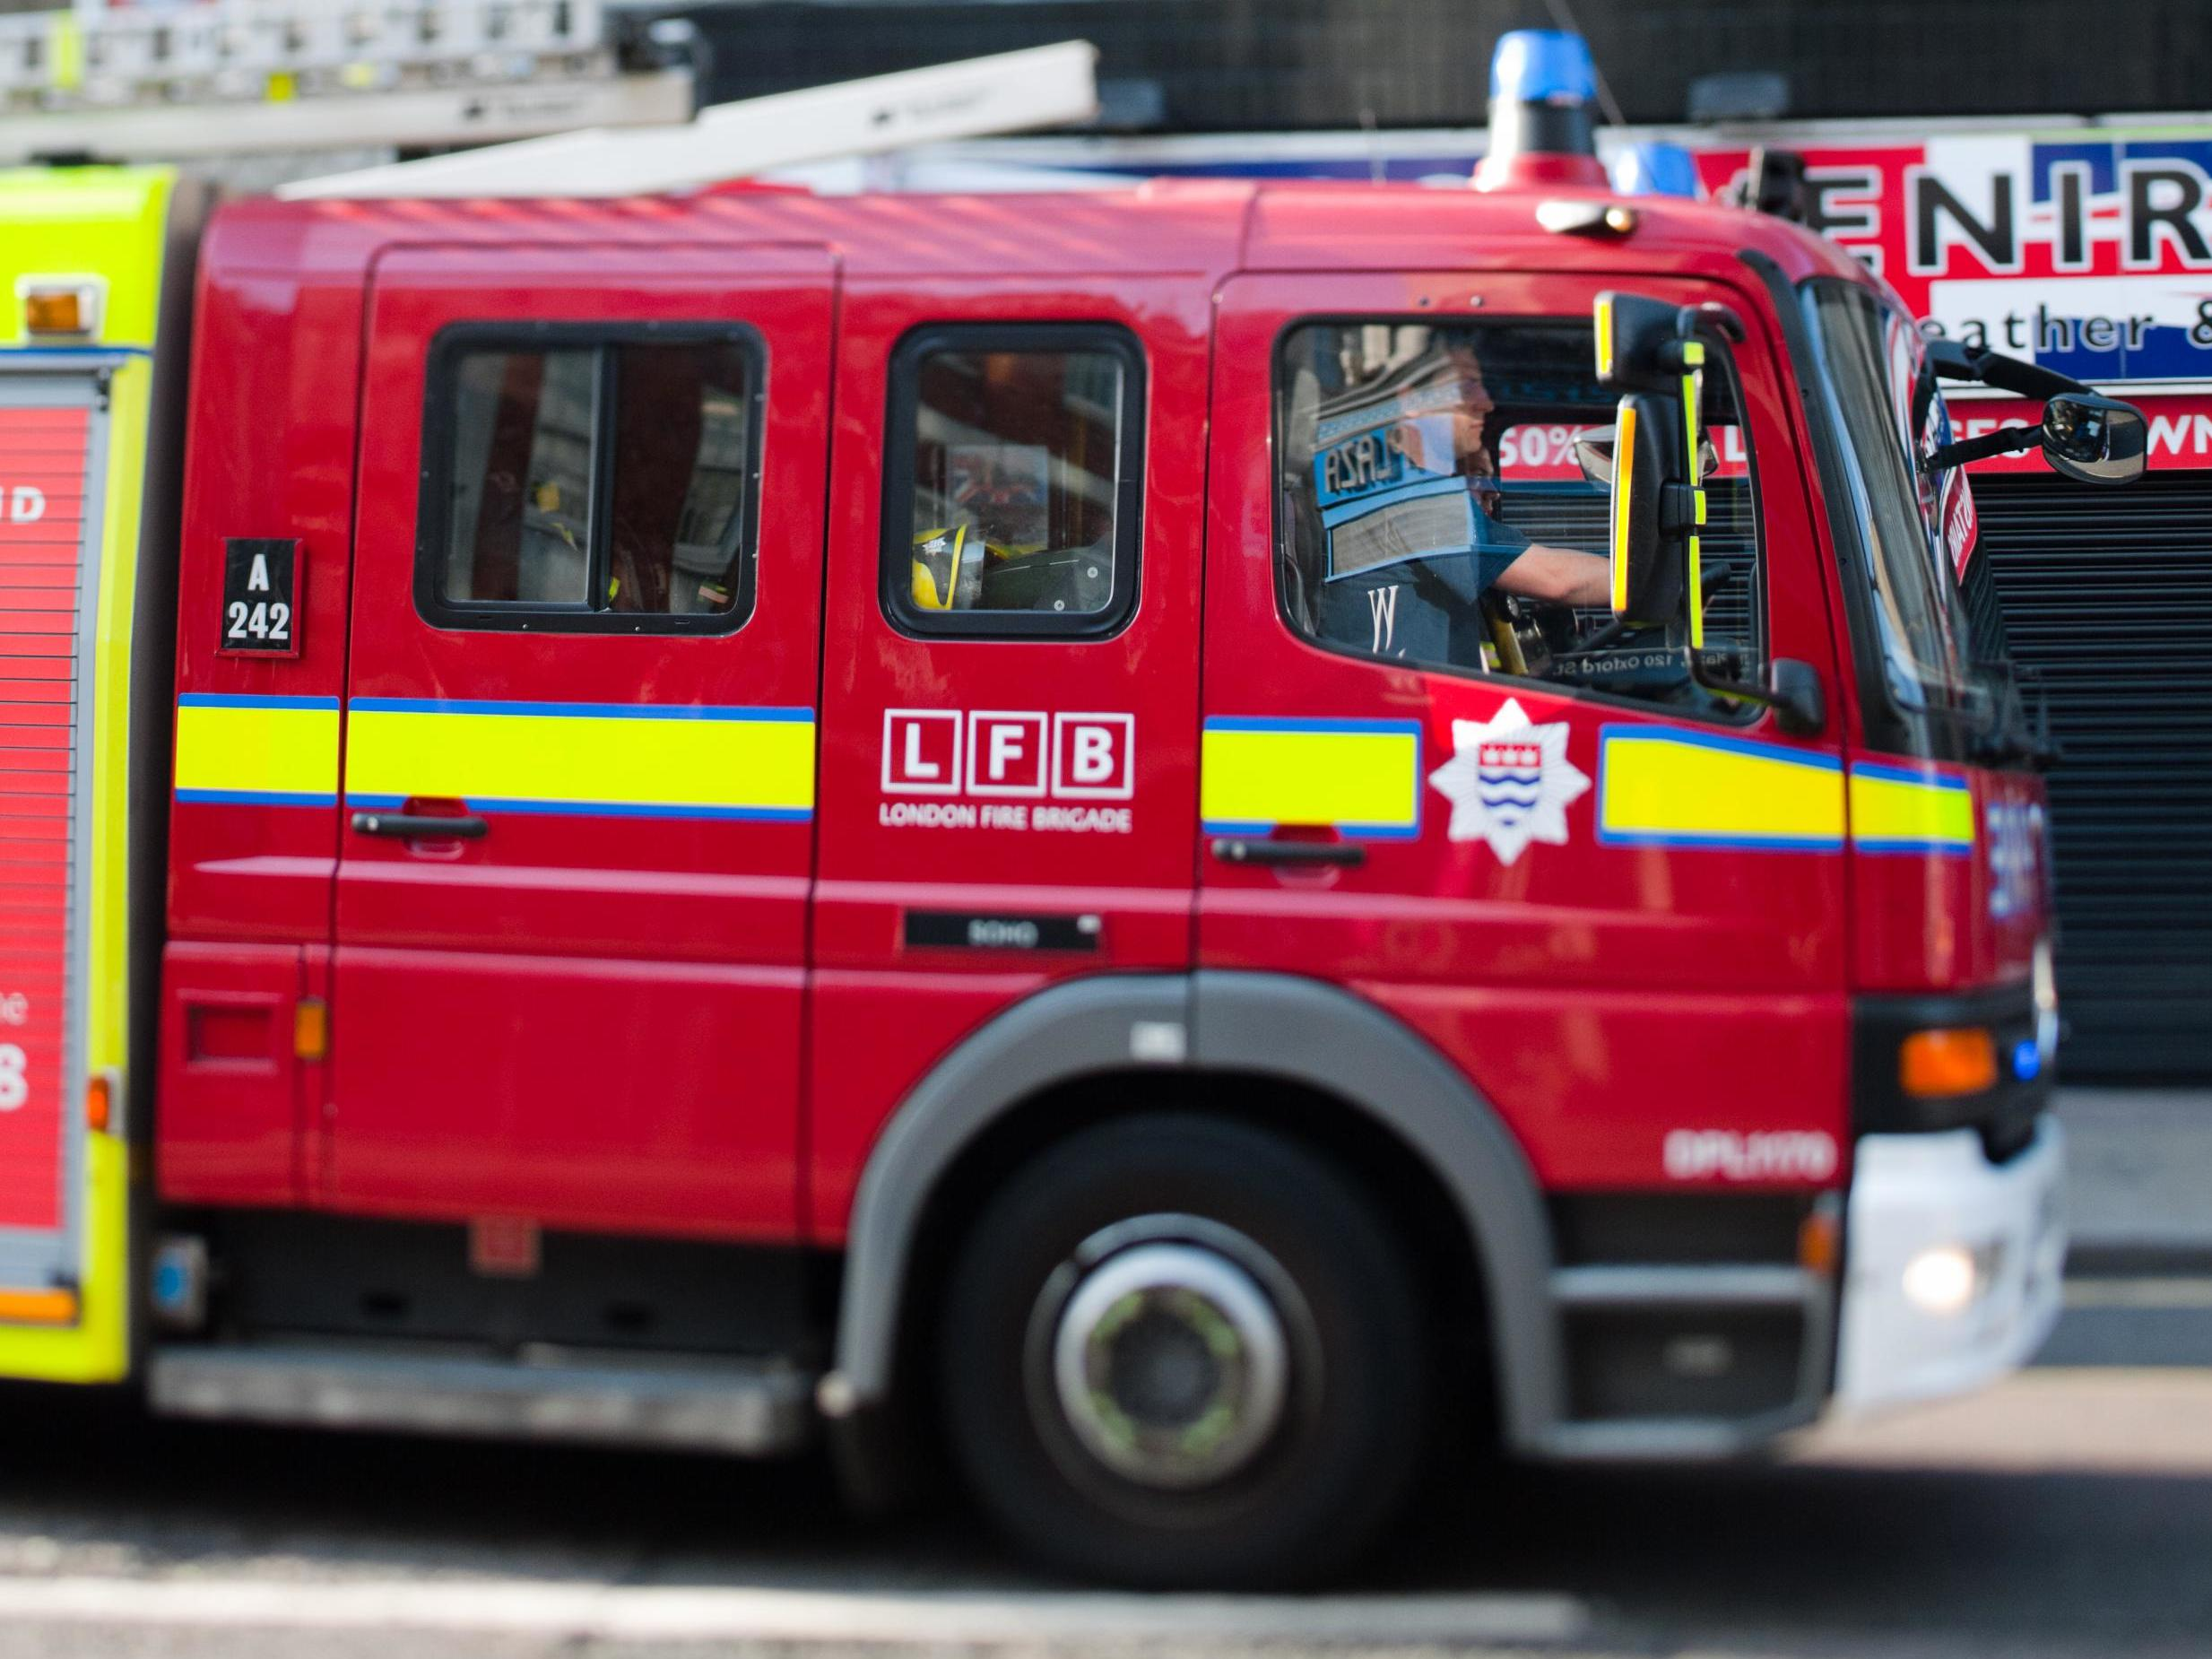 Fire brigade urges public to use common sense after hundreds of calls from people locked in toilets